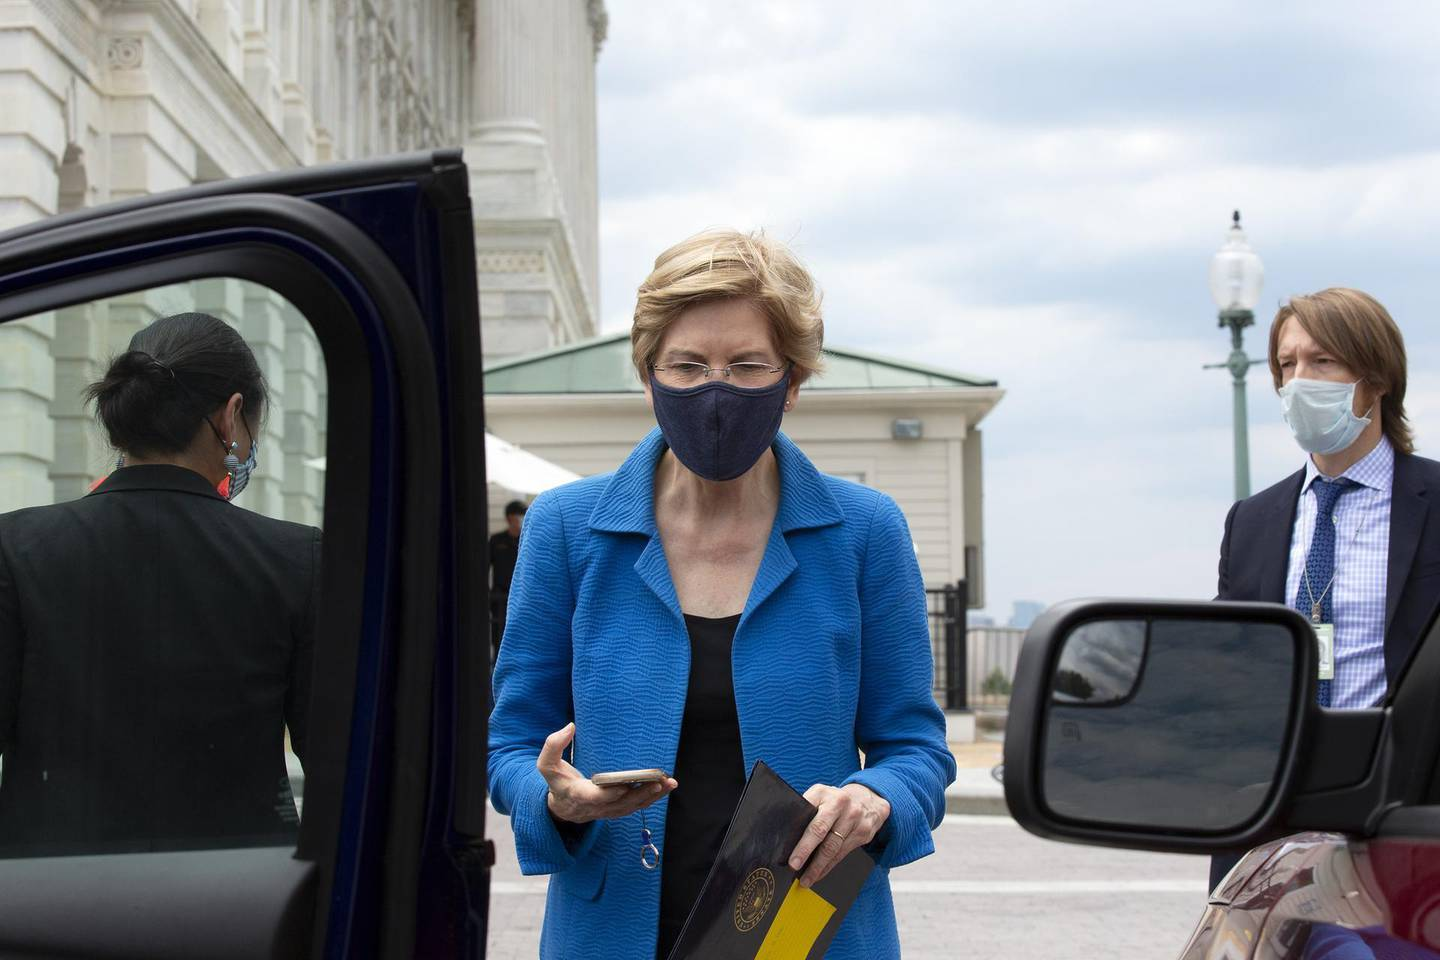 Senator Elizabeth Warren, a Democrat from Massachusetts, wears a protective mask while departing the U.S. Capitol following votes in Washington, D.C., U.S., on Thursday, June 25, 2020. Democrats yesterday blocked a Republican policing reform bill in the Senate, saying it falls far short of what is needed to enforce accountability for state and local departments in dealing with racial disparities. Photographer: Stefani Reynolds/Bloomberg